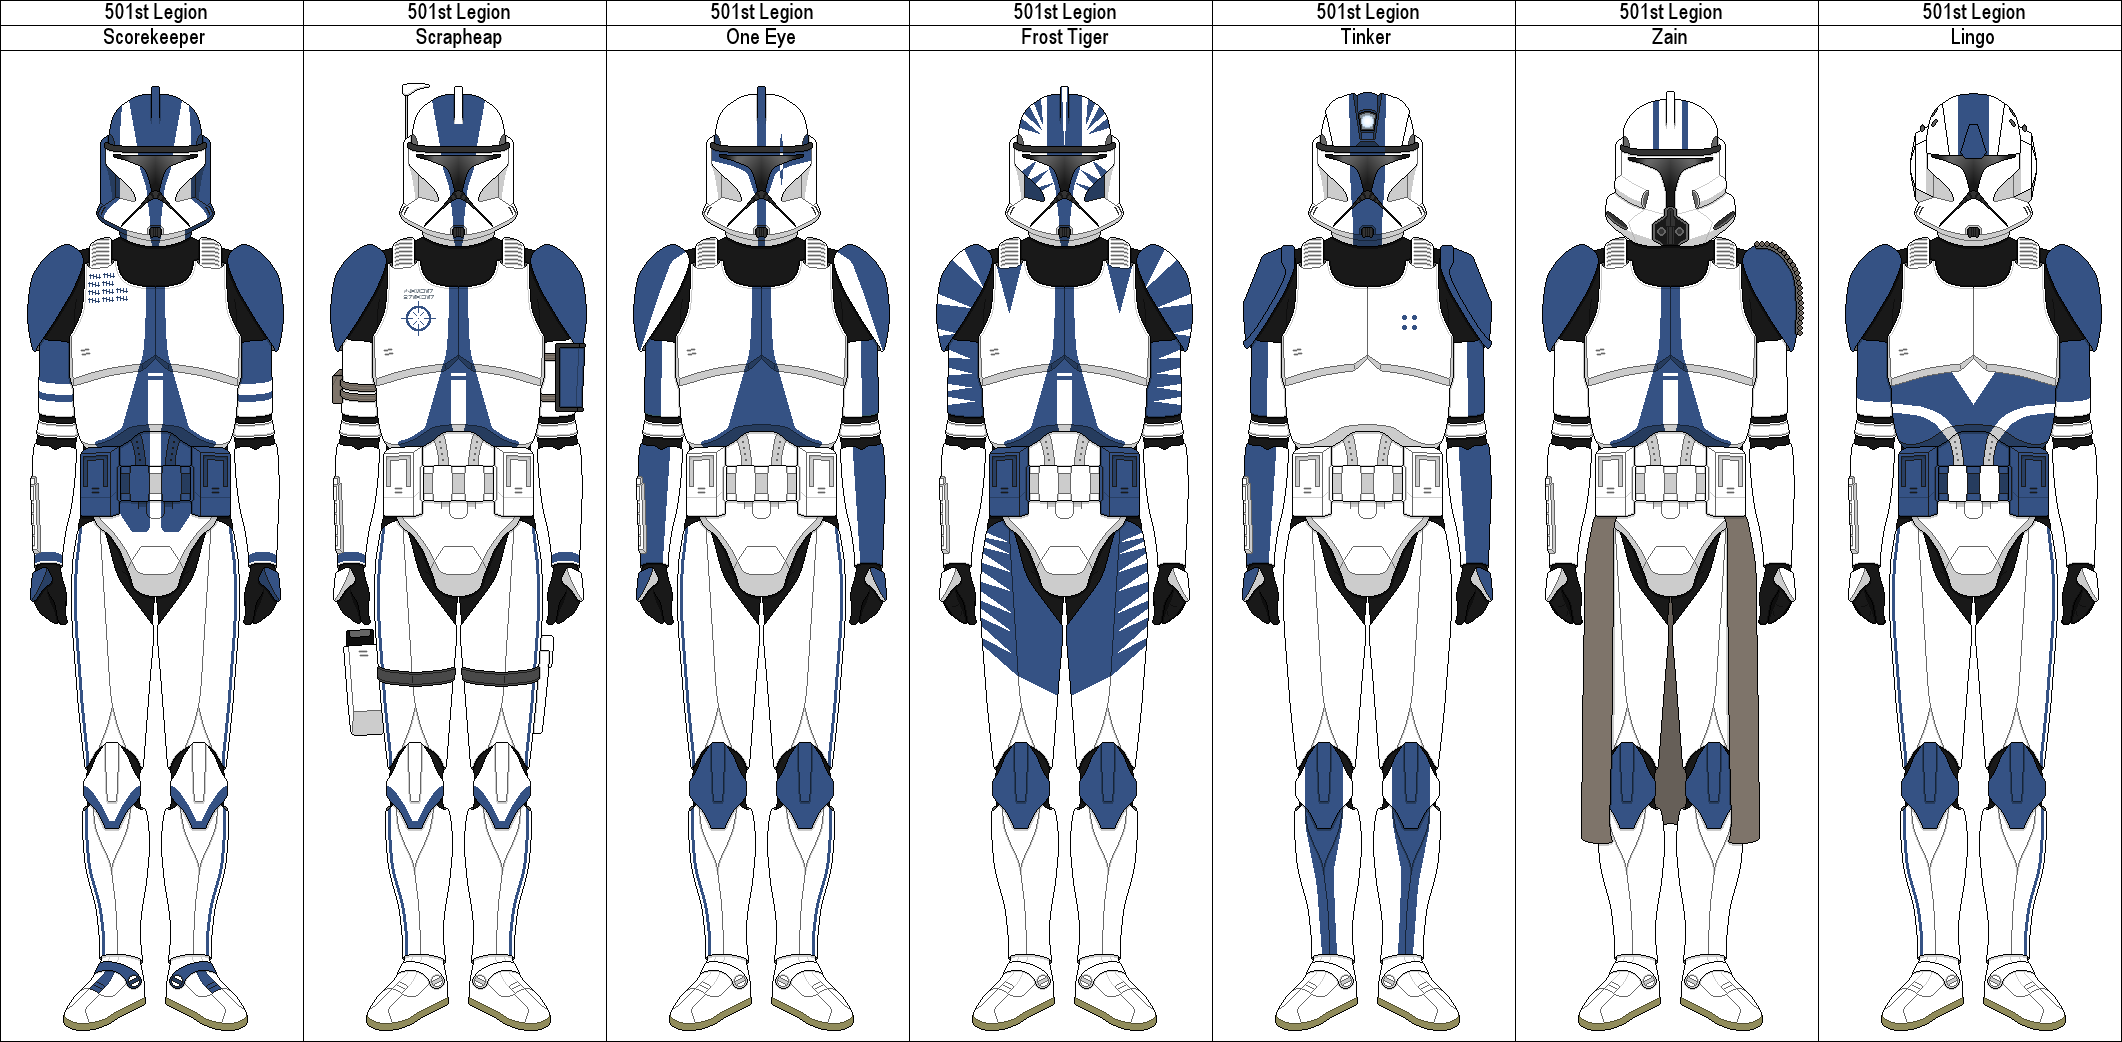 501st Wallpaper 100 images in Collection Page 1 2122x1042